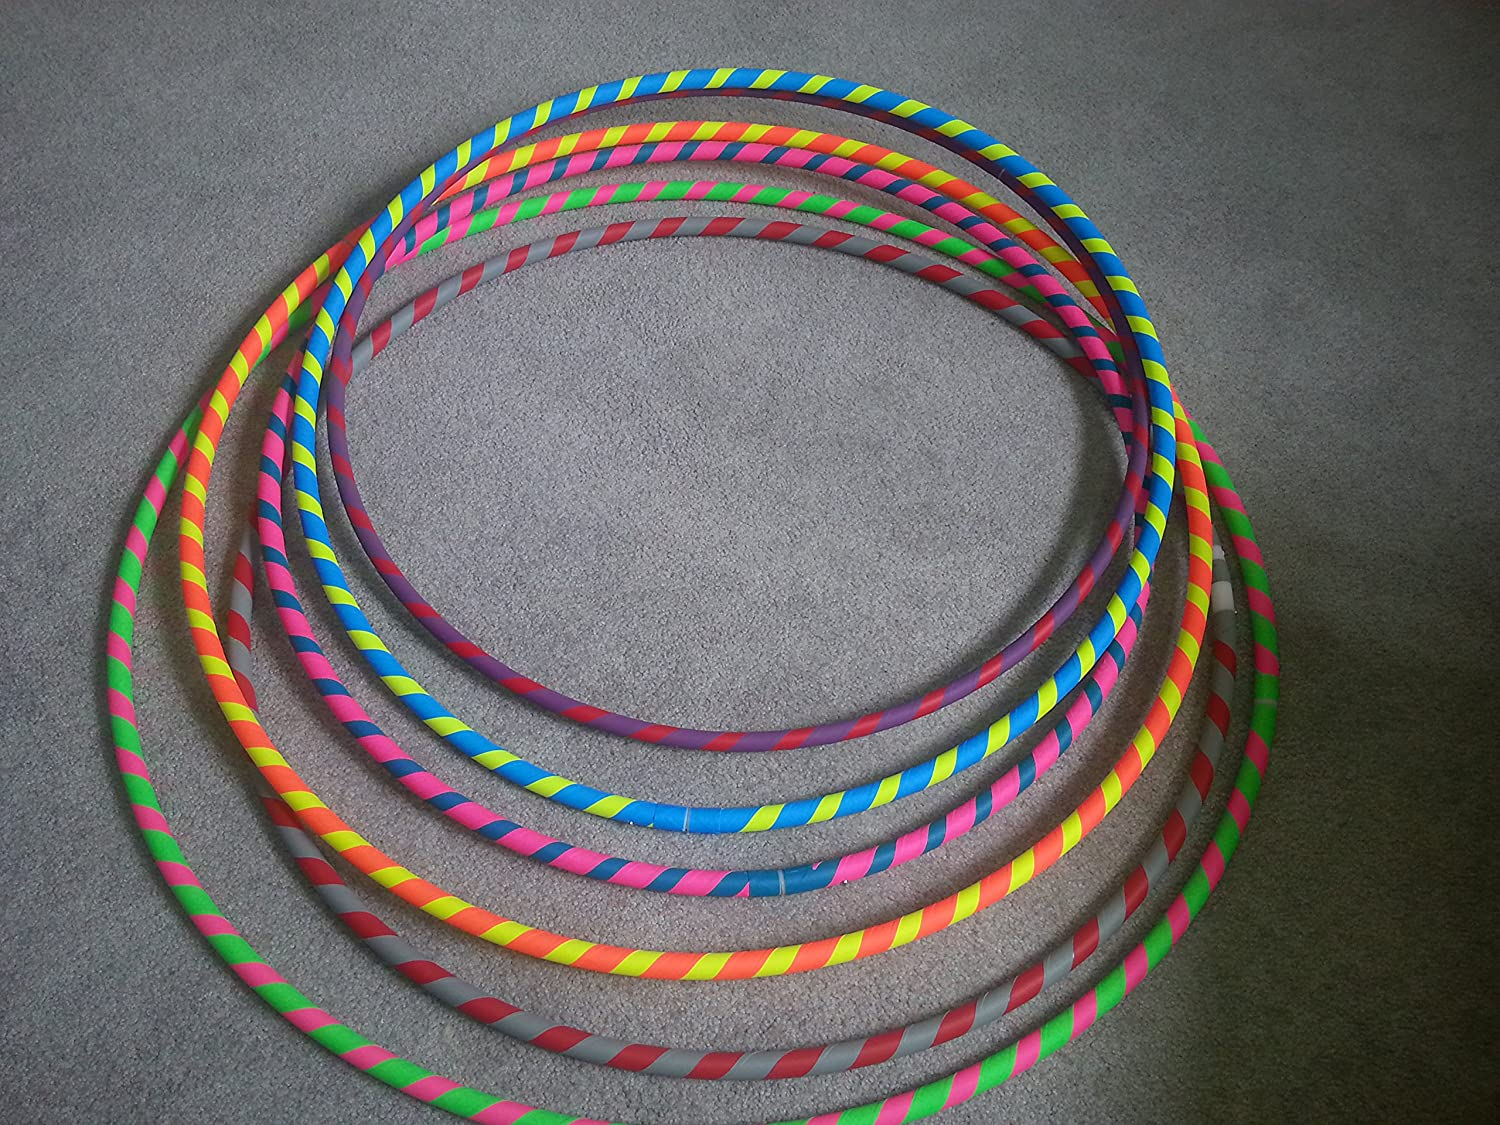 34 3/4 HDPE Gaffers Spiral Taped Practice Hula Hoop